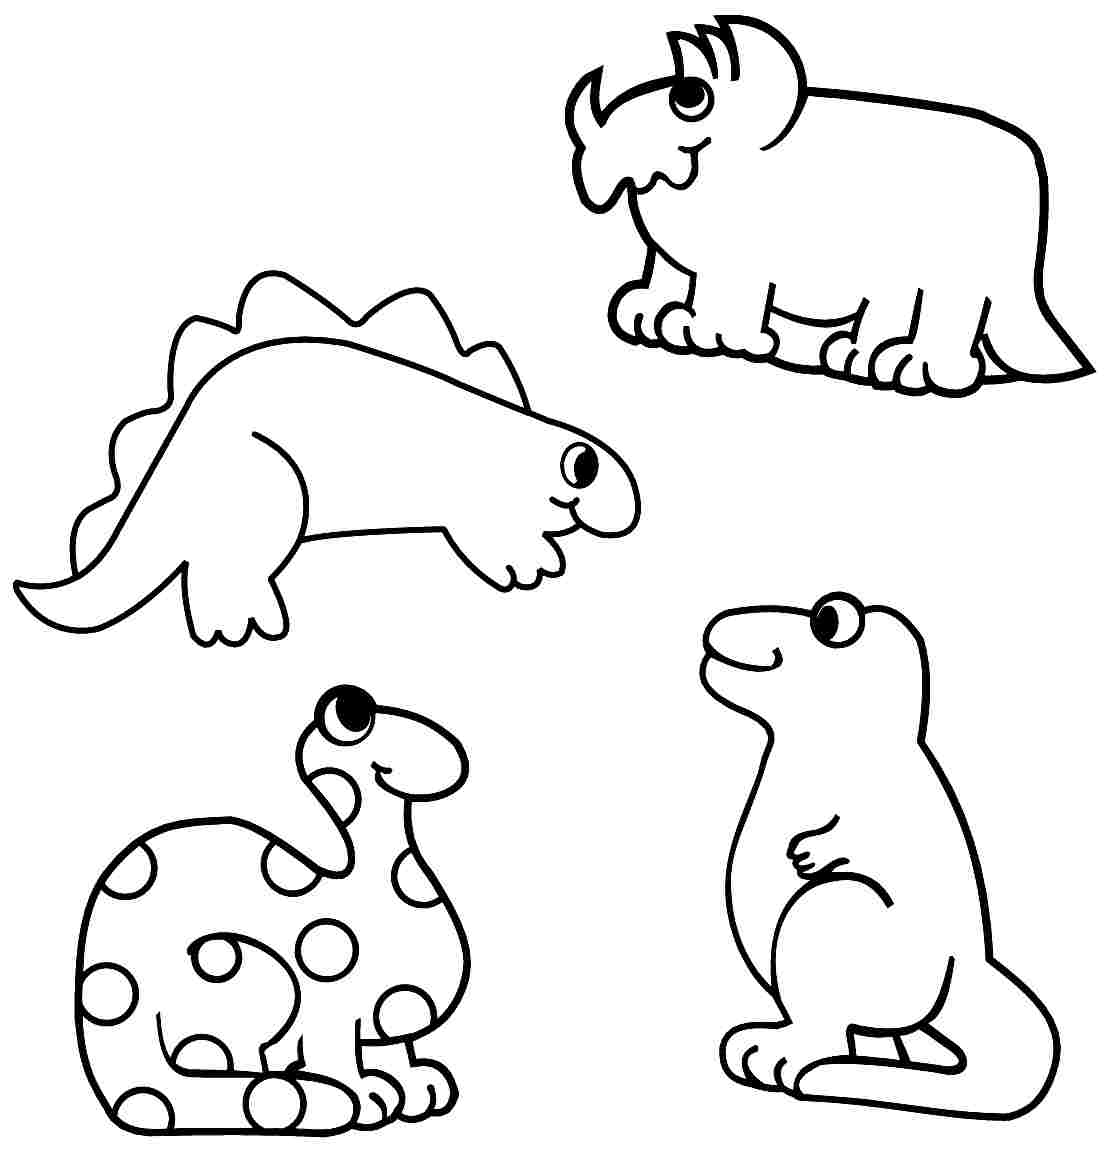 dino coloring page fun dinosaur coloring pages imagiplay coloring page dino